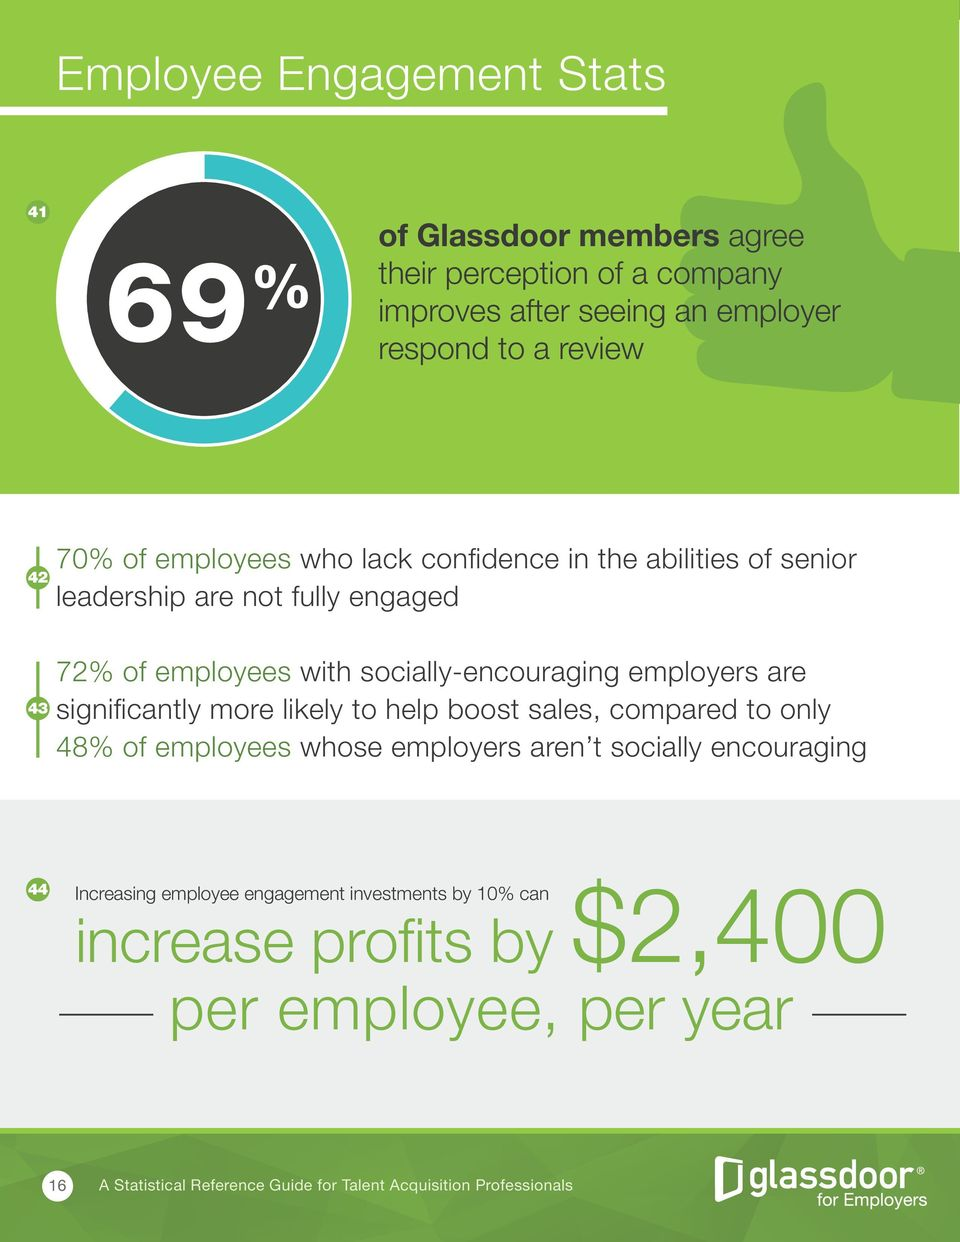 with socially-encouraging employers are significantly more likely to help boost sales, compared to only 48% of employees whose